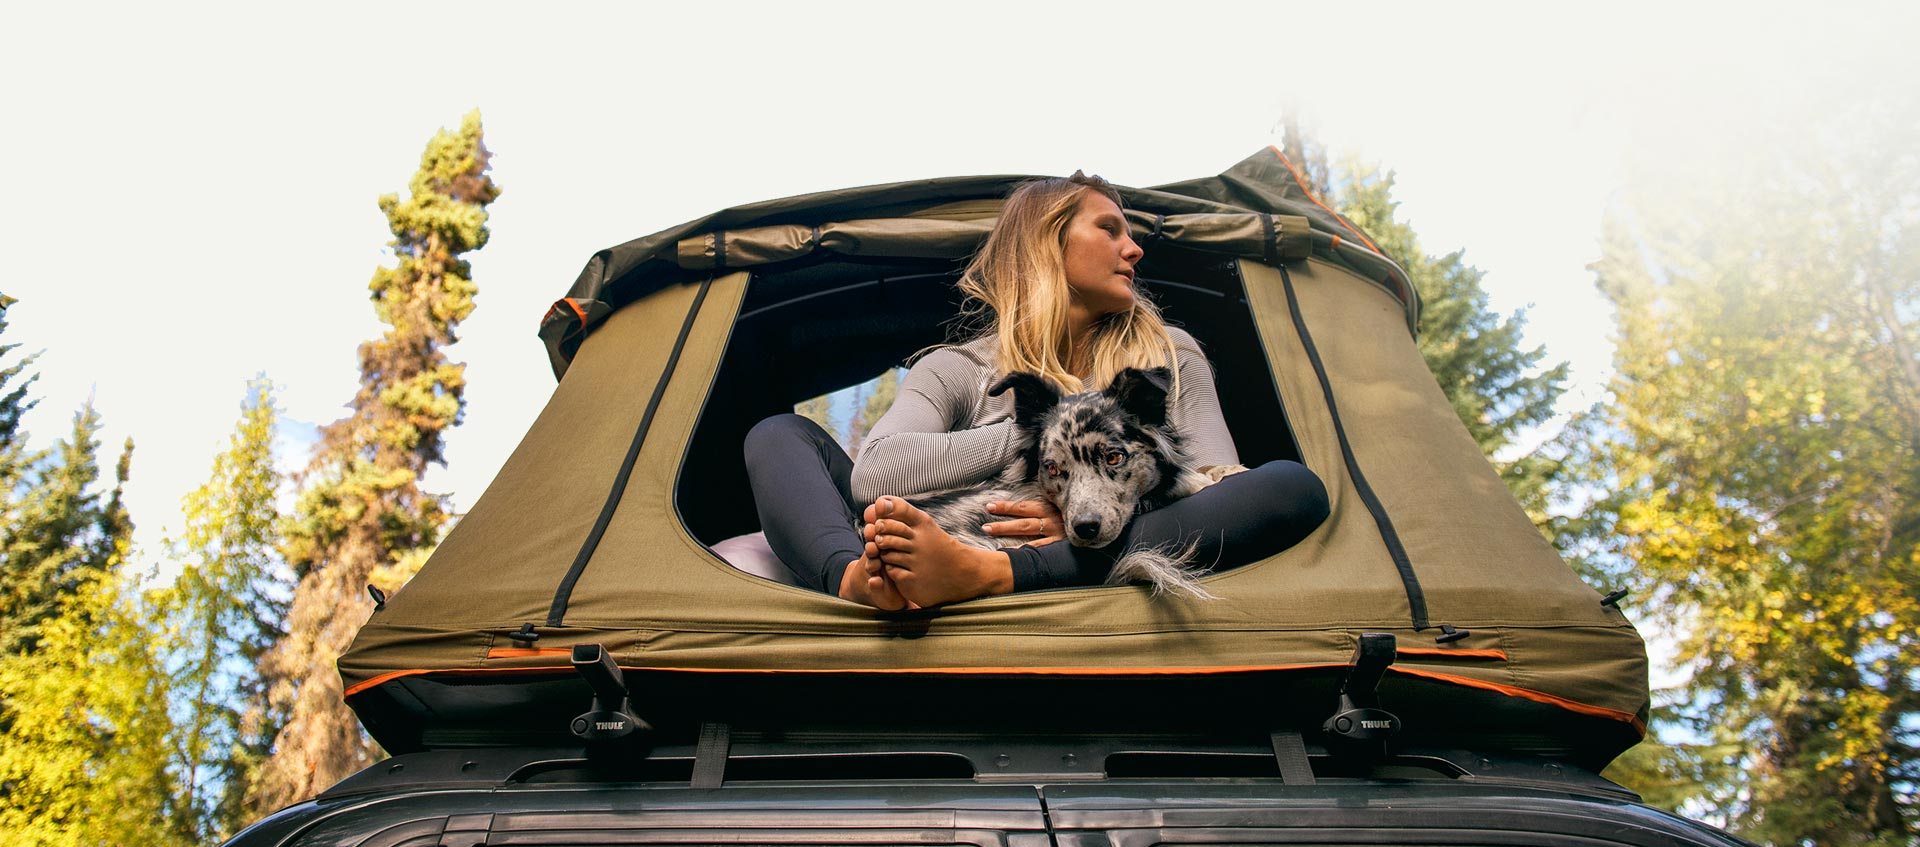 Sitting in the roof top tent with her dog